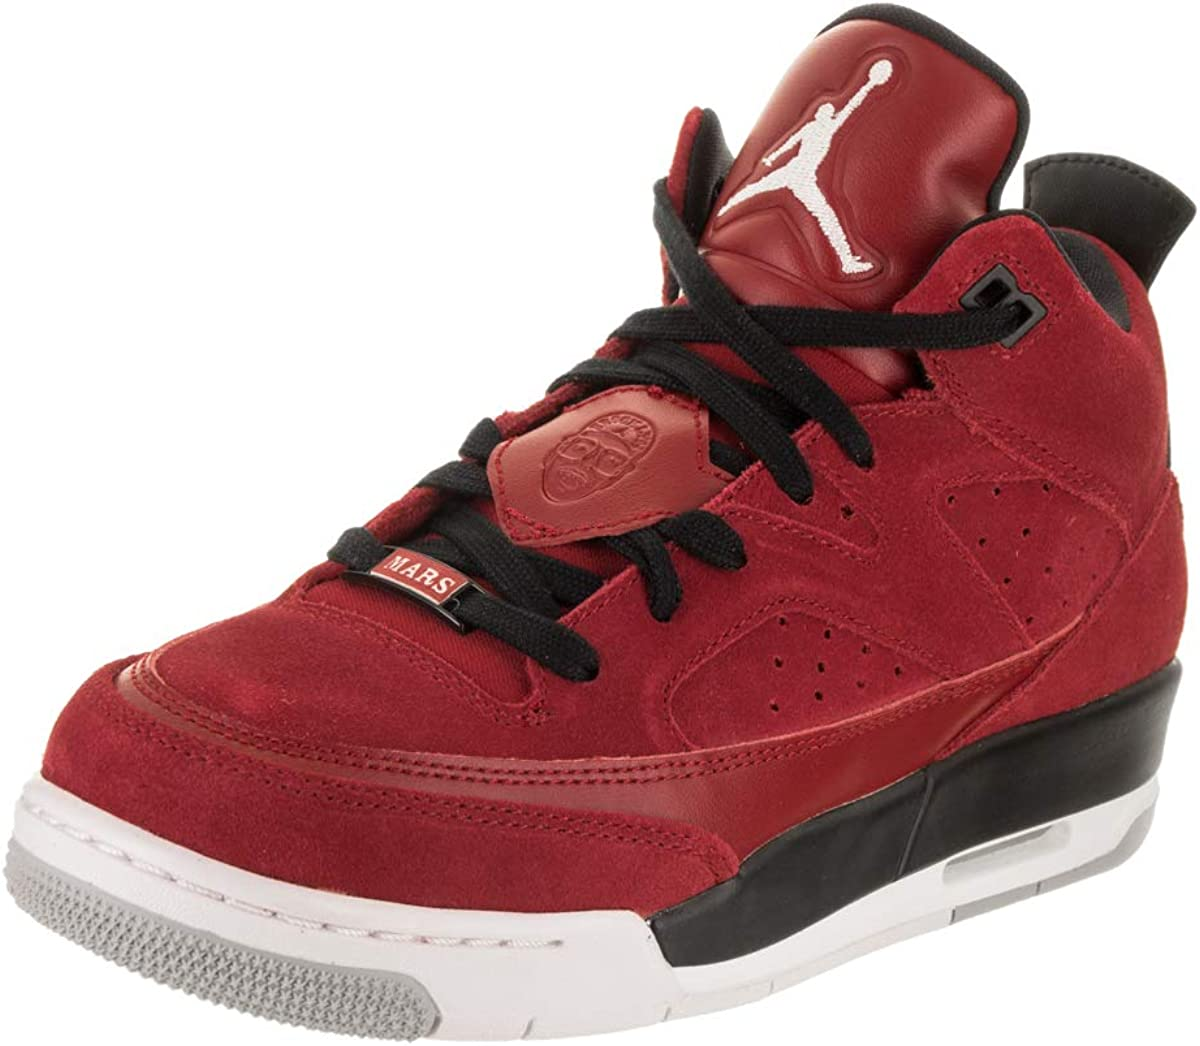 Nike Jordan Son of Low Boys Sales SALE items Ranking TOP16 from new works 580604 Fashion-Sneakers GS